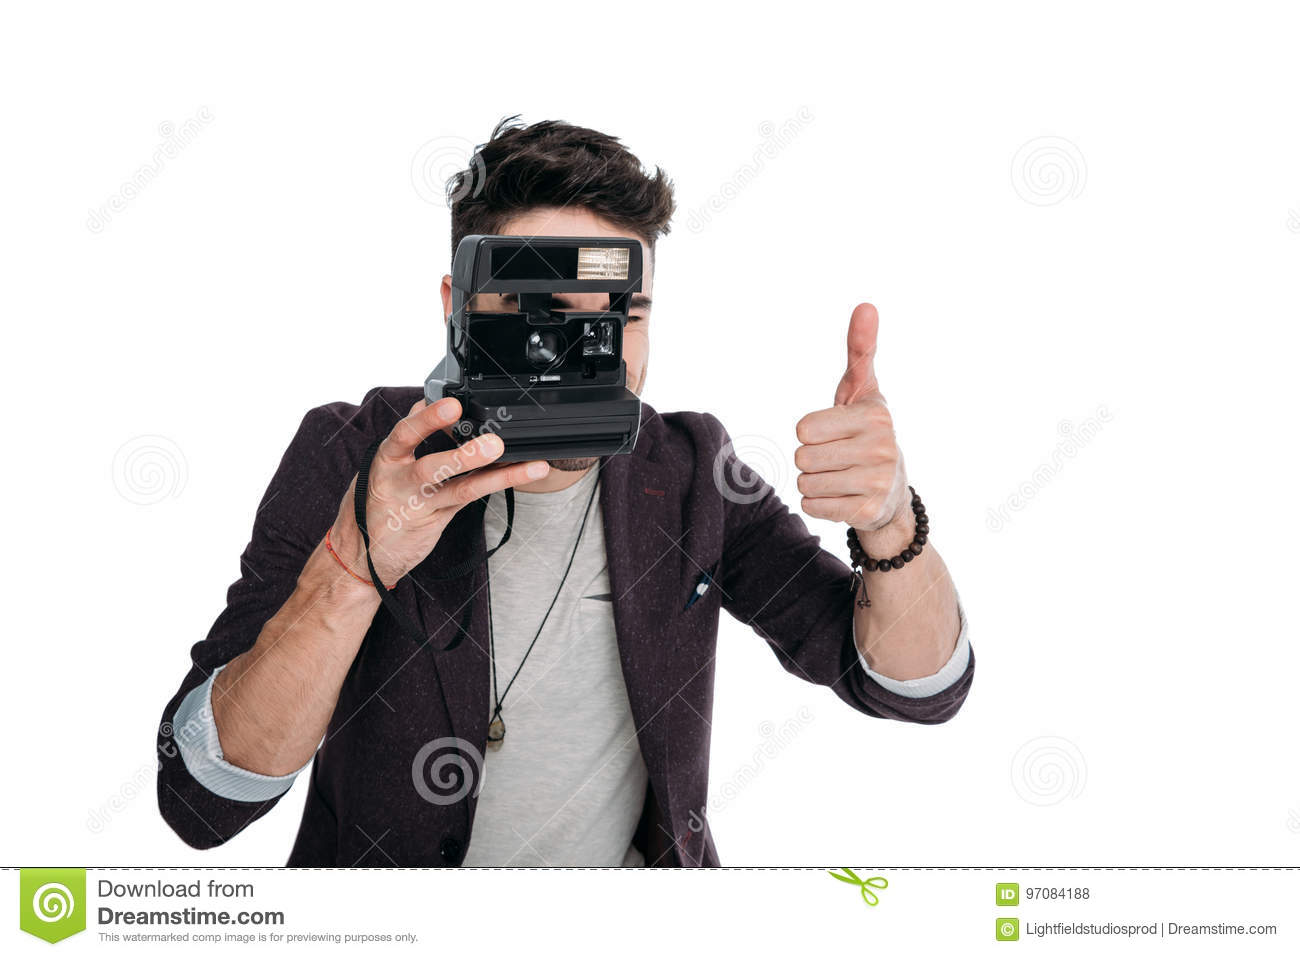 Man taking photo with polaroid camera and showing thumb up